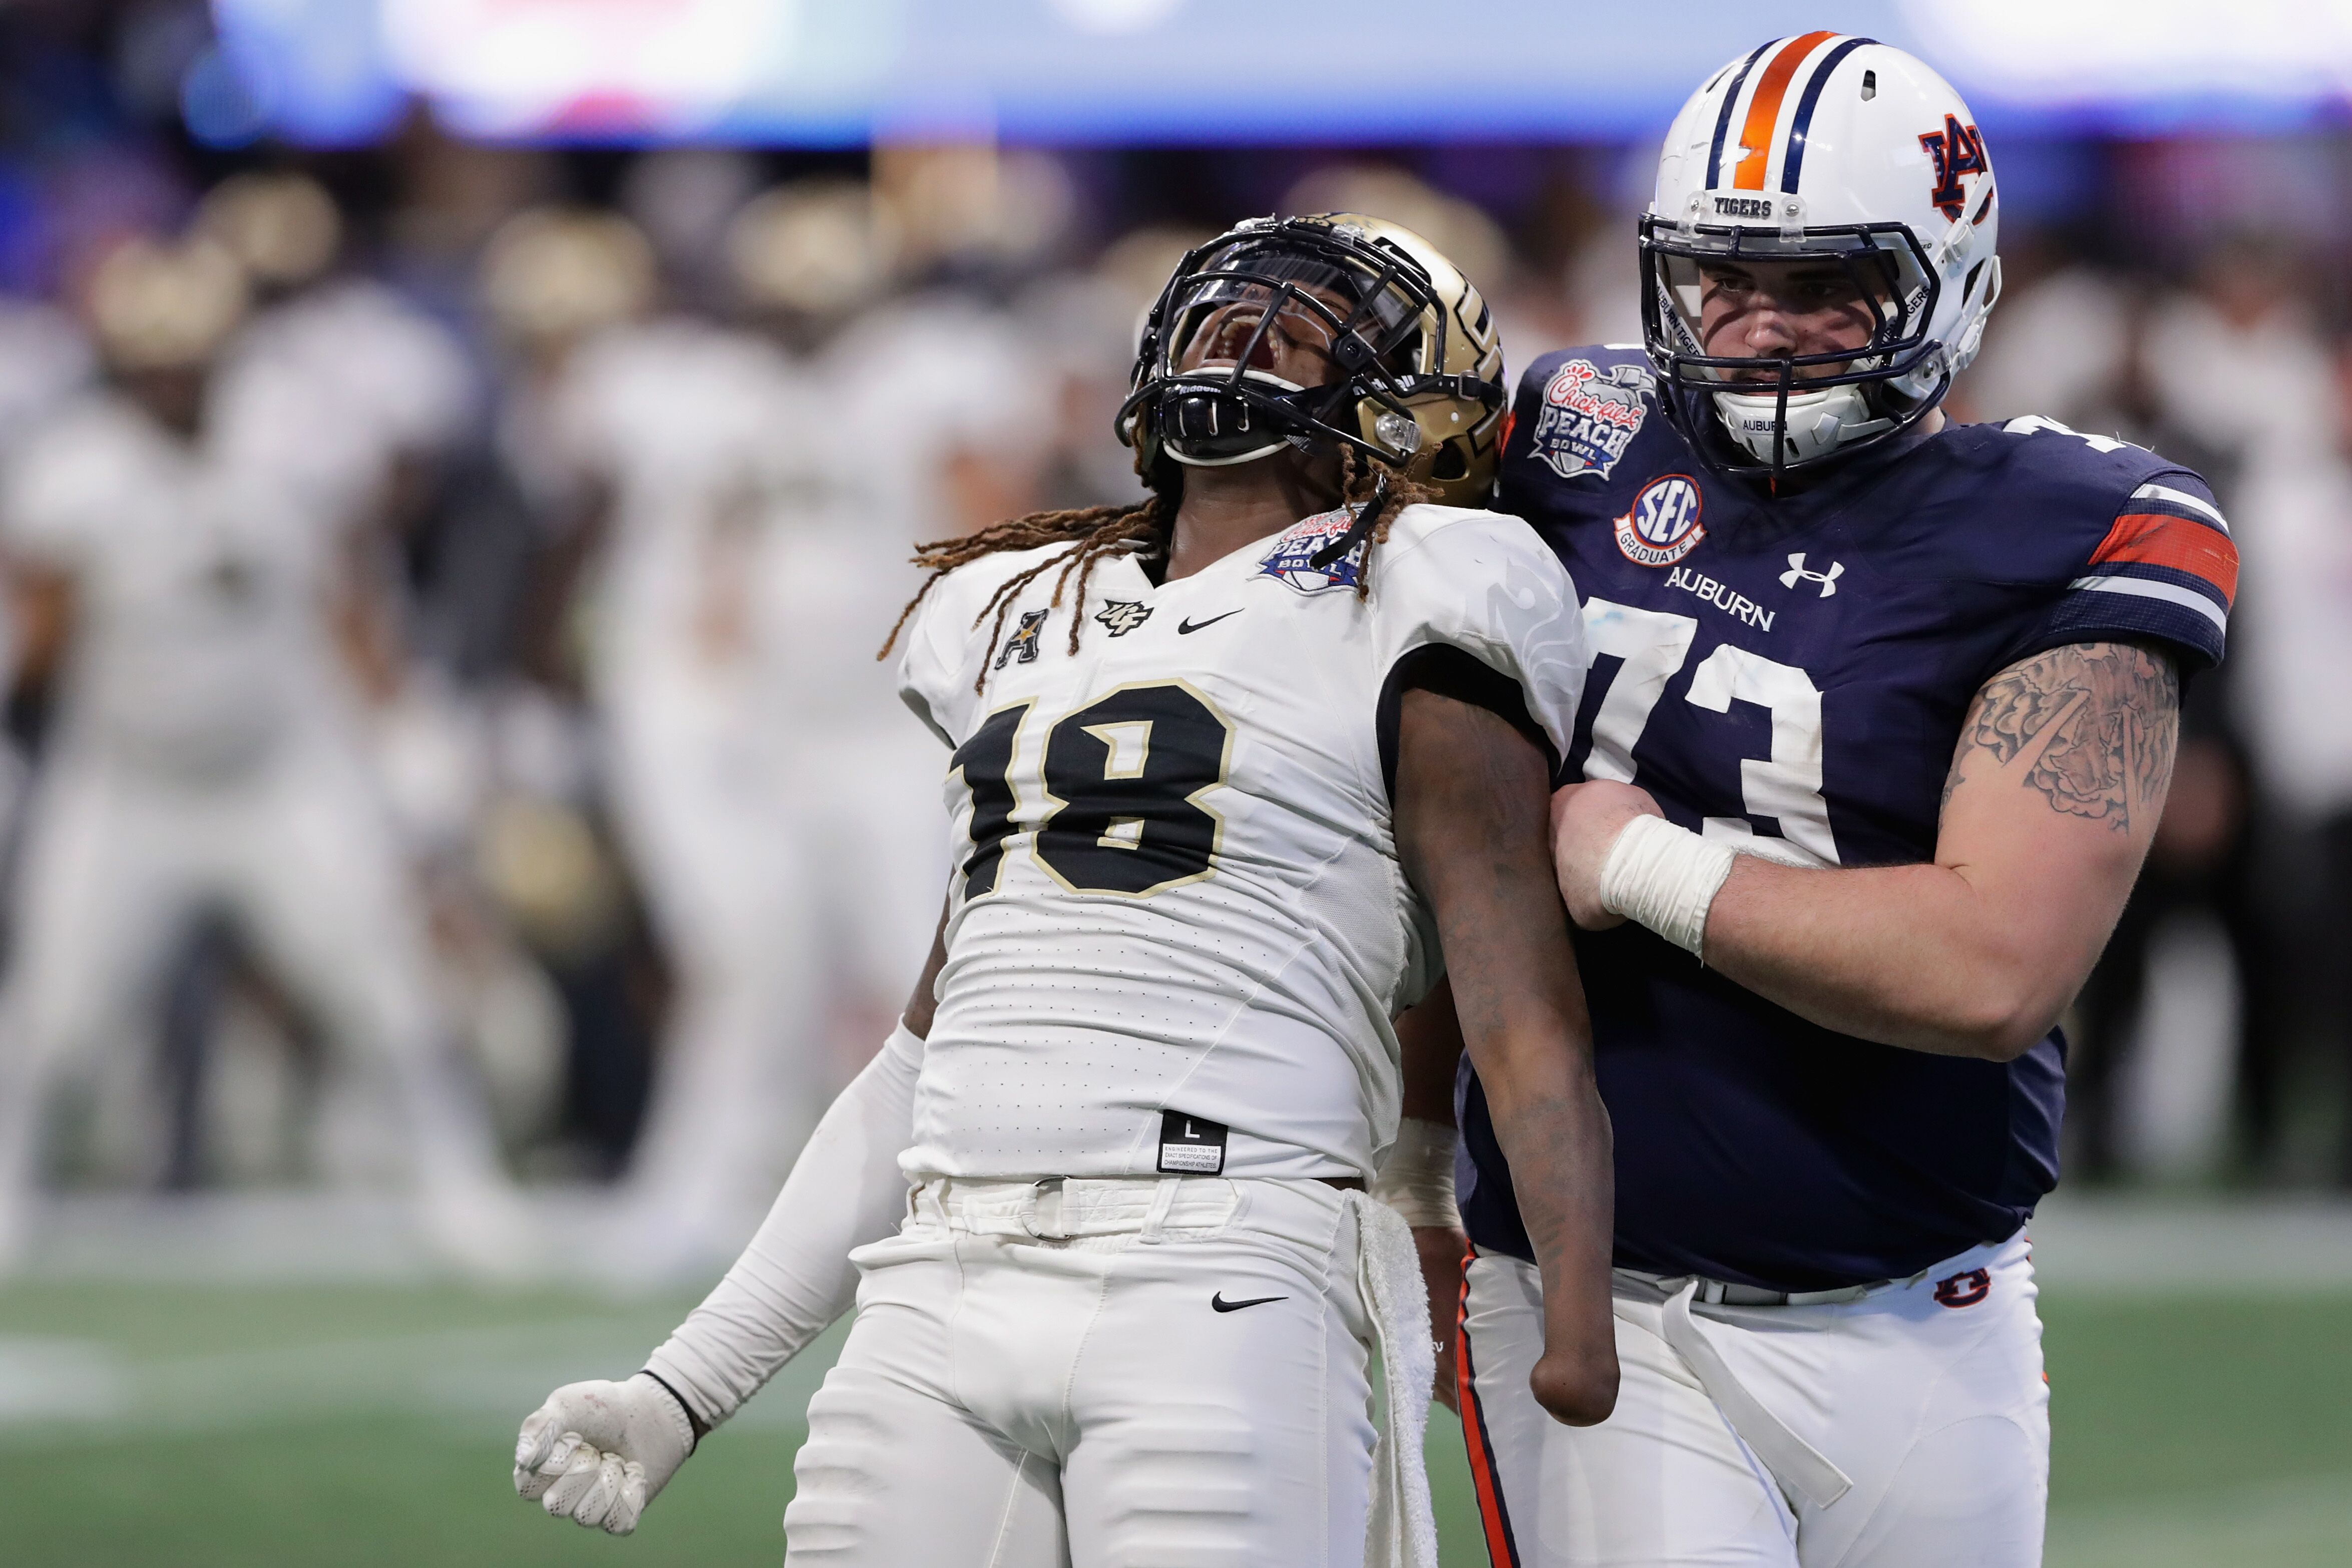 f4004824 Philadelphia Eagles: Shaquem Griffin is a Senior Bowl player to watch